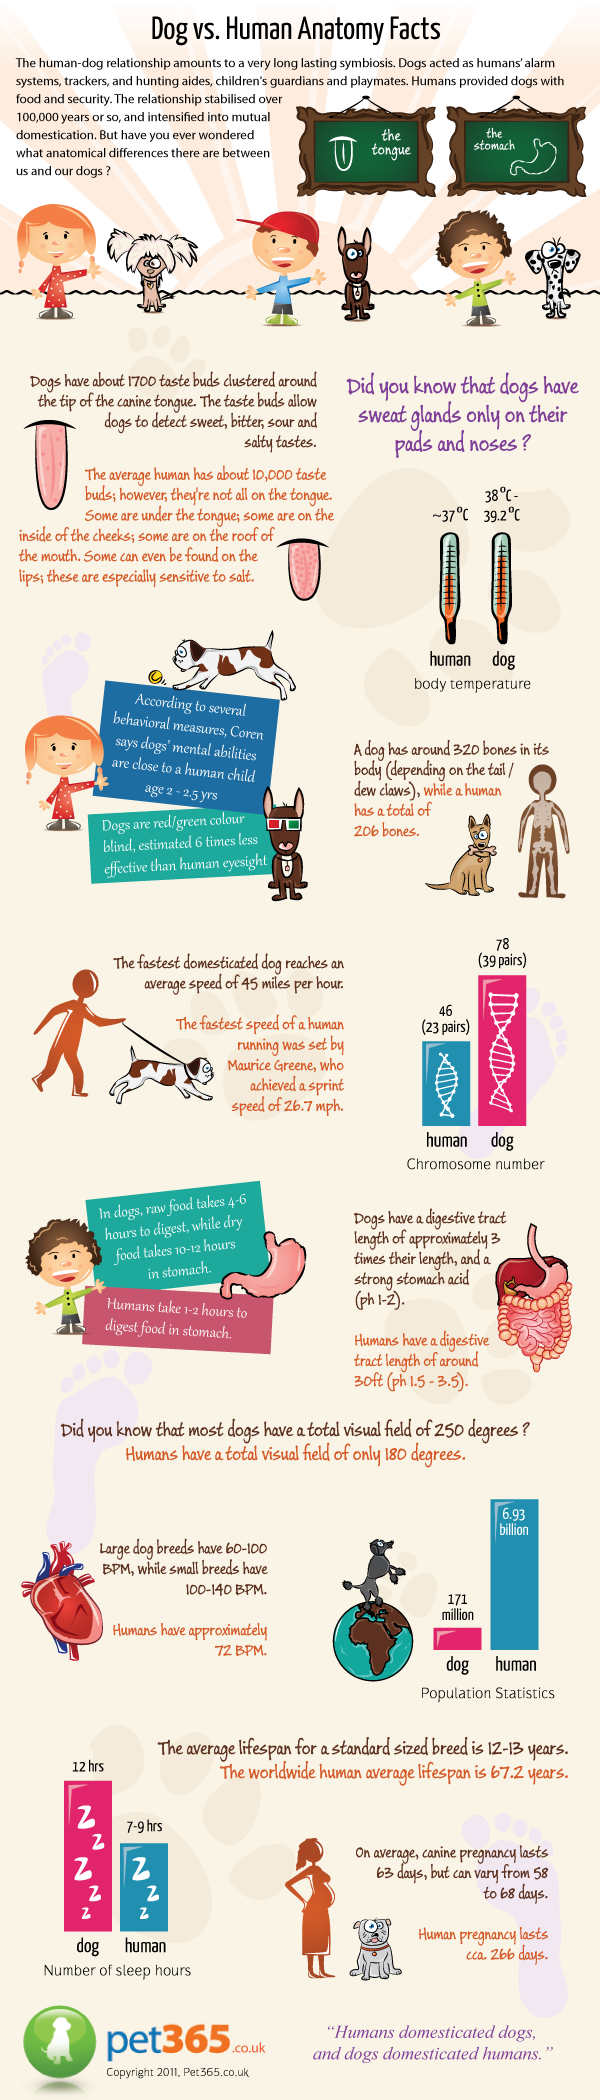 Dog vs Human Anatomy Facts [Infographic]